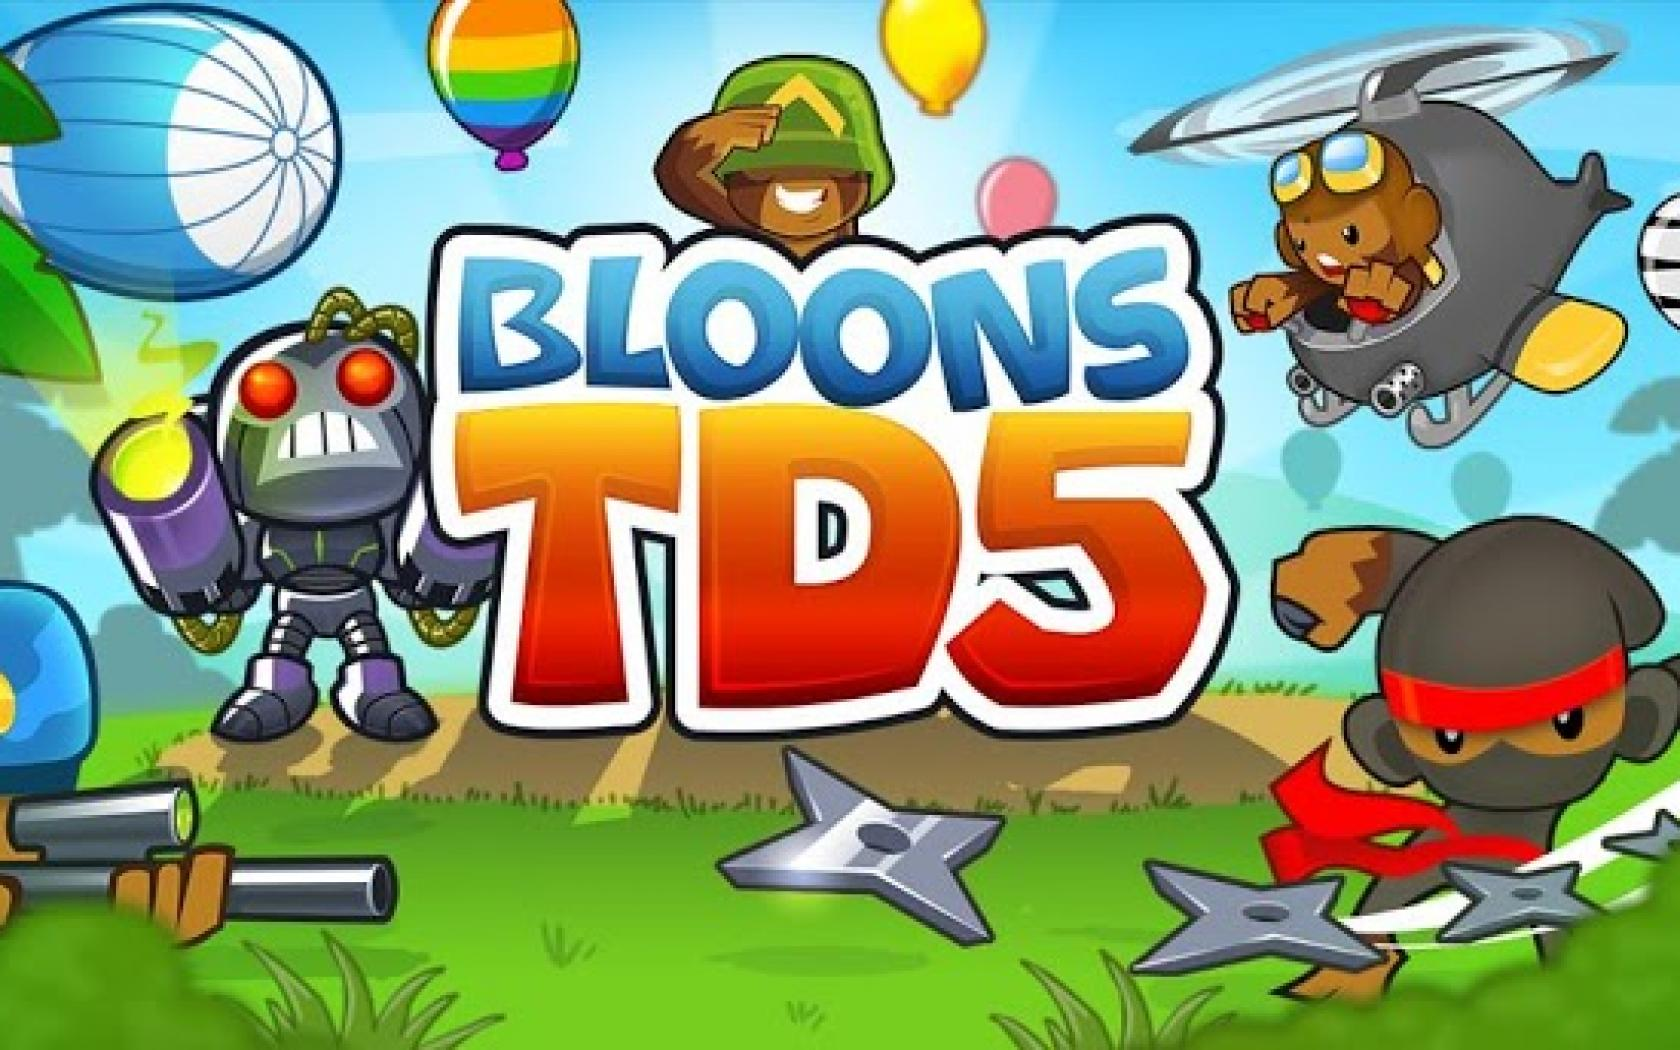 Bloons TD 5 hd picture widescreen wallpaper 1680x1050 4 51242abfc115c 3541